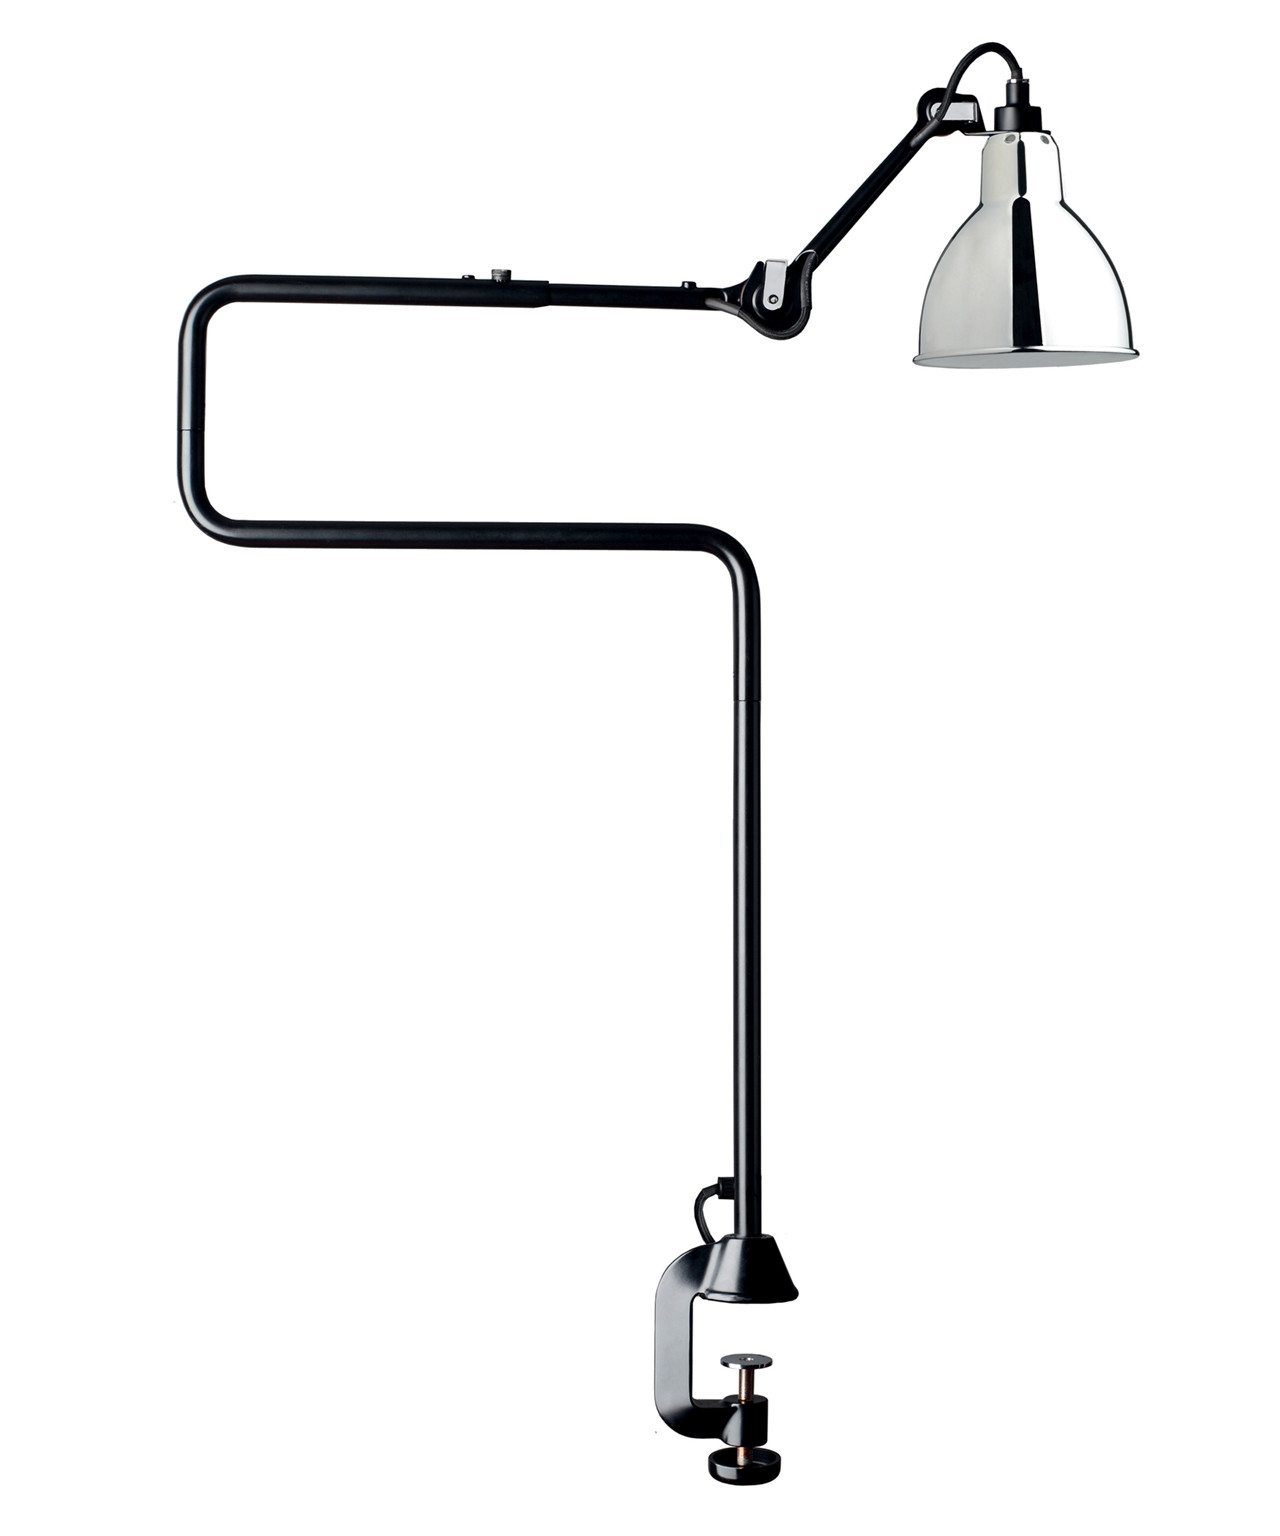 Image of   211/311 Bordlampe Krom - Lampe Gras